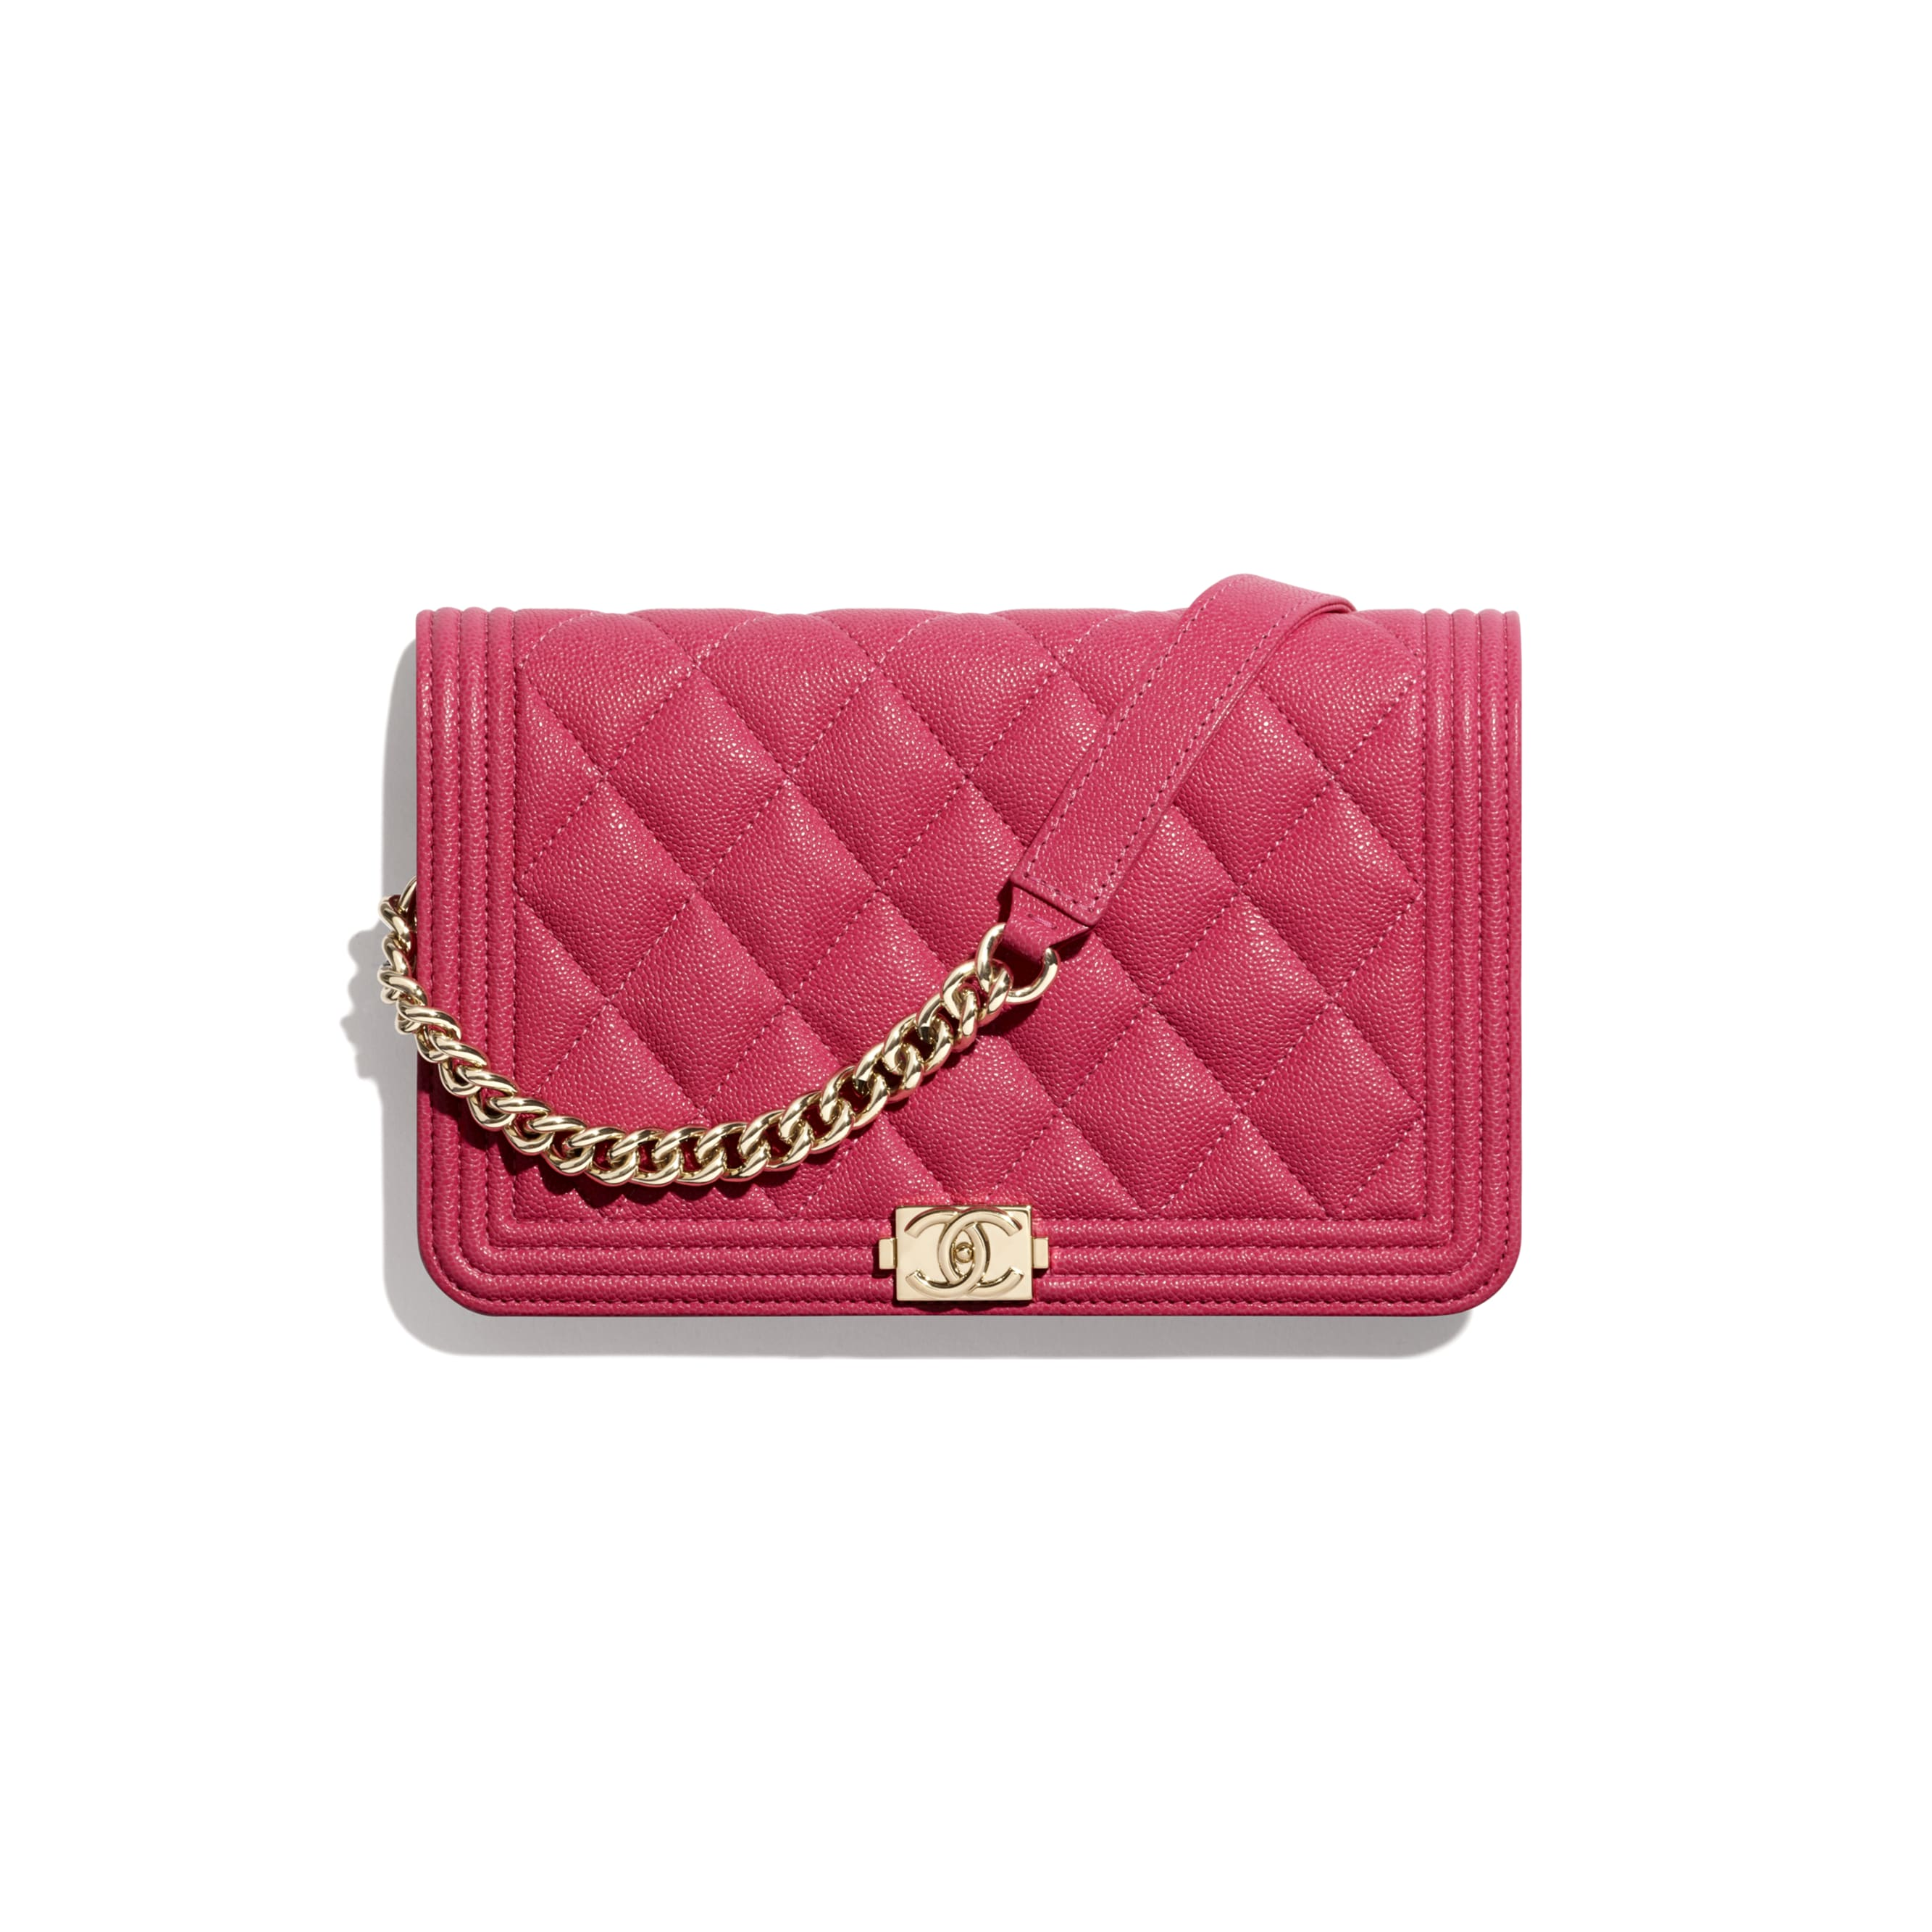 BOY CHANEL Wallet On Chain - Pink - Grained Calfskin & Gold-Tone Metal - CHANEL - Default view - see standard sized version